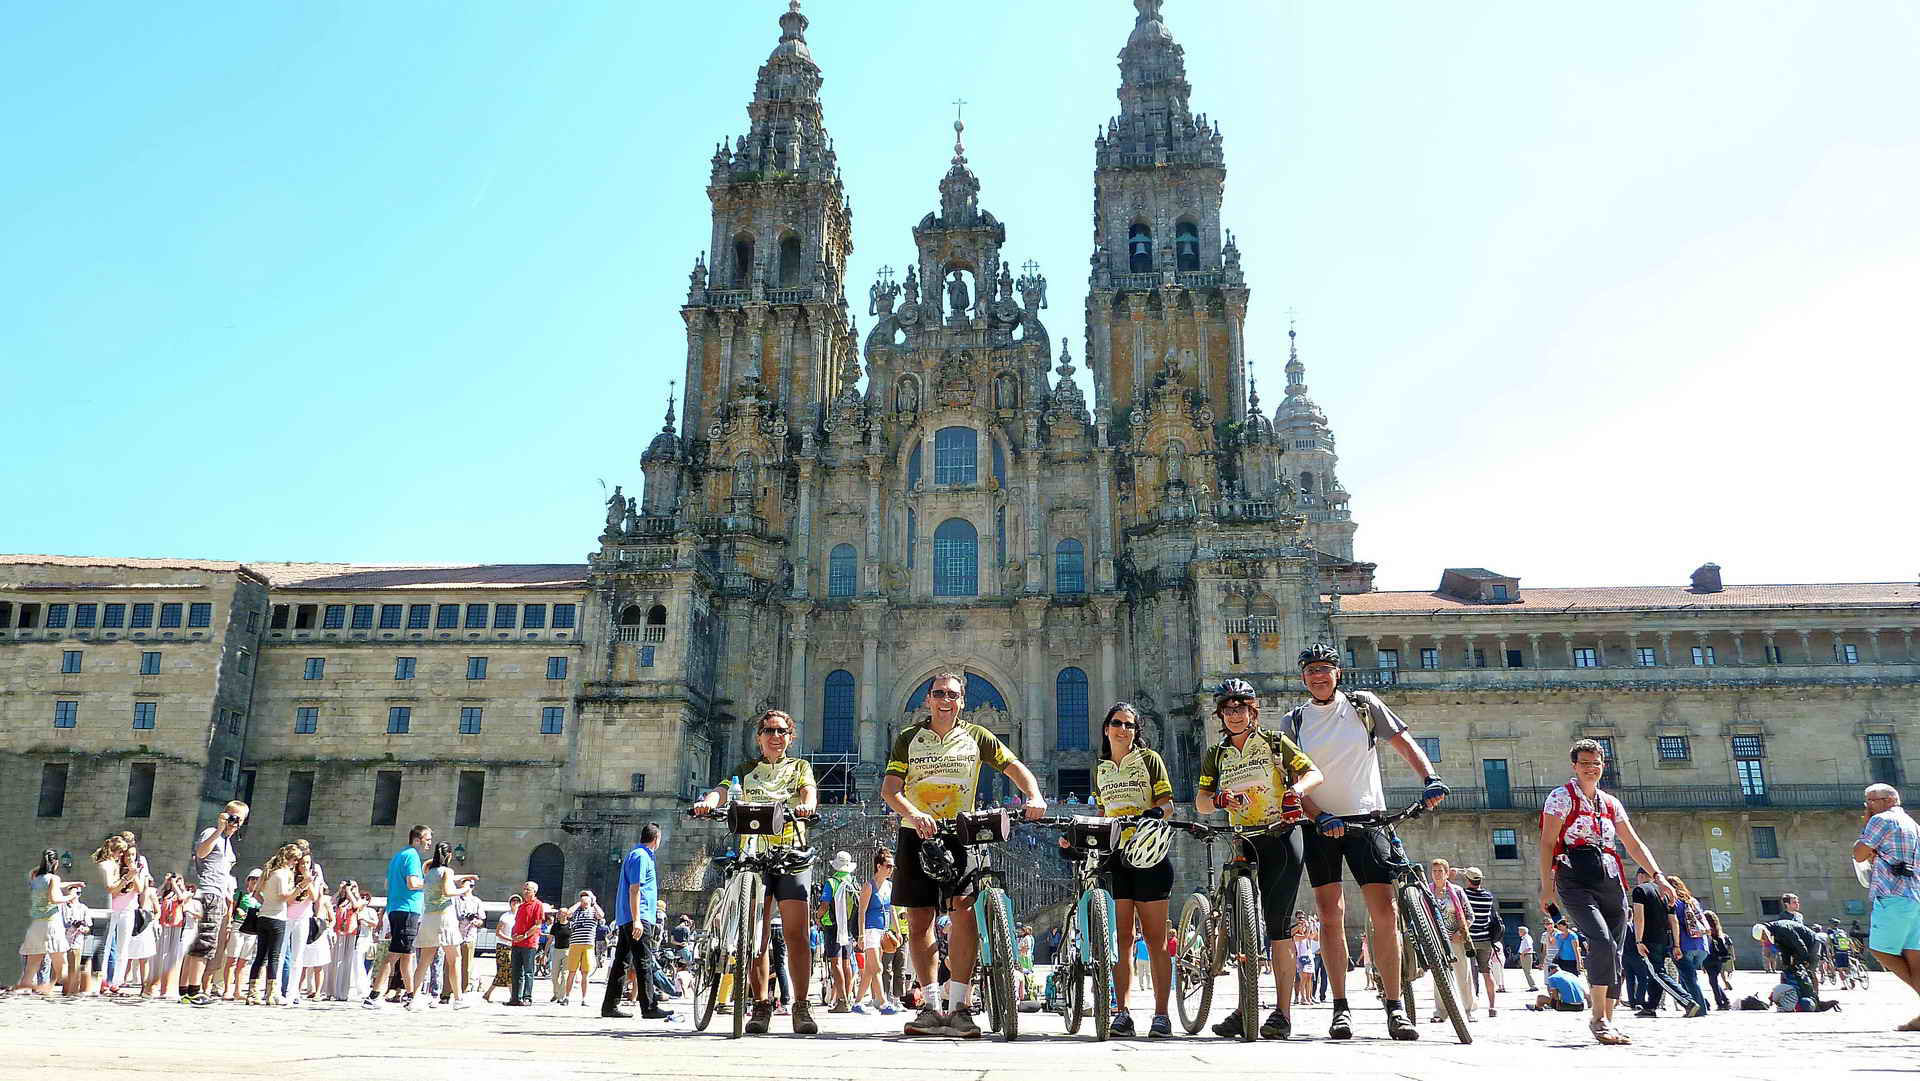 Cycling the Camino de Santiago, one of the World's oldest pilgrimage routes